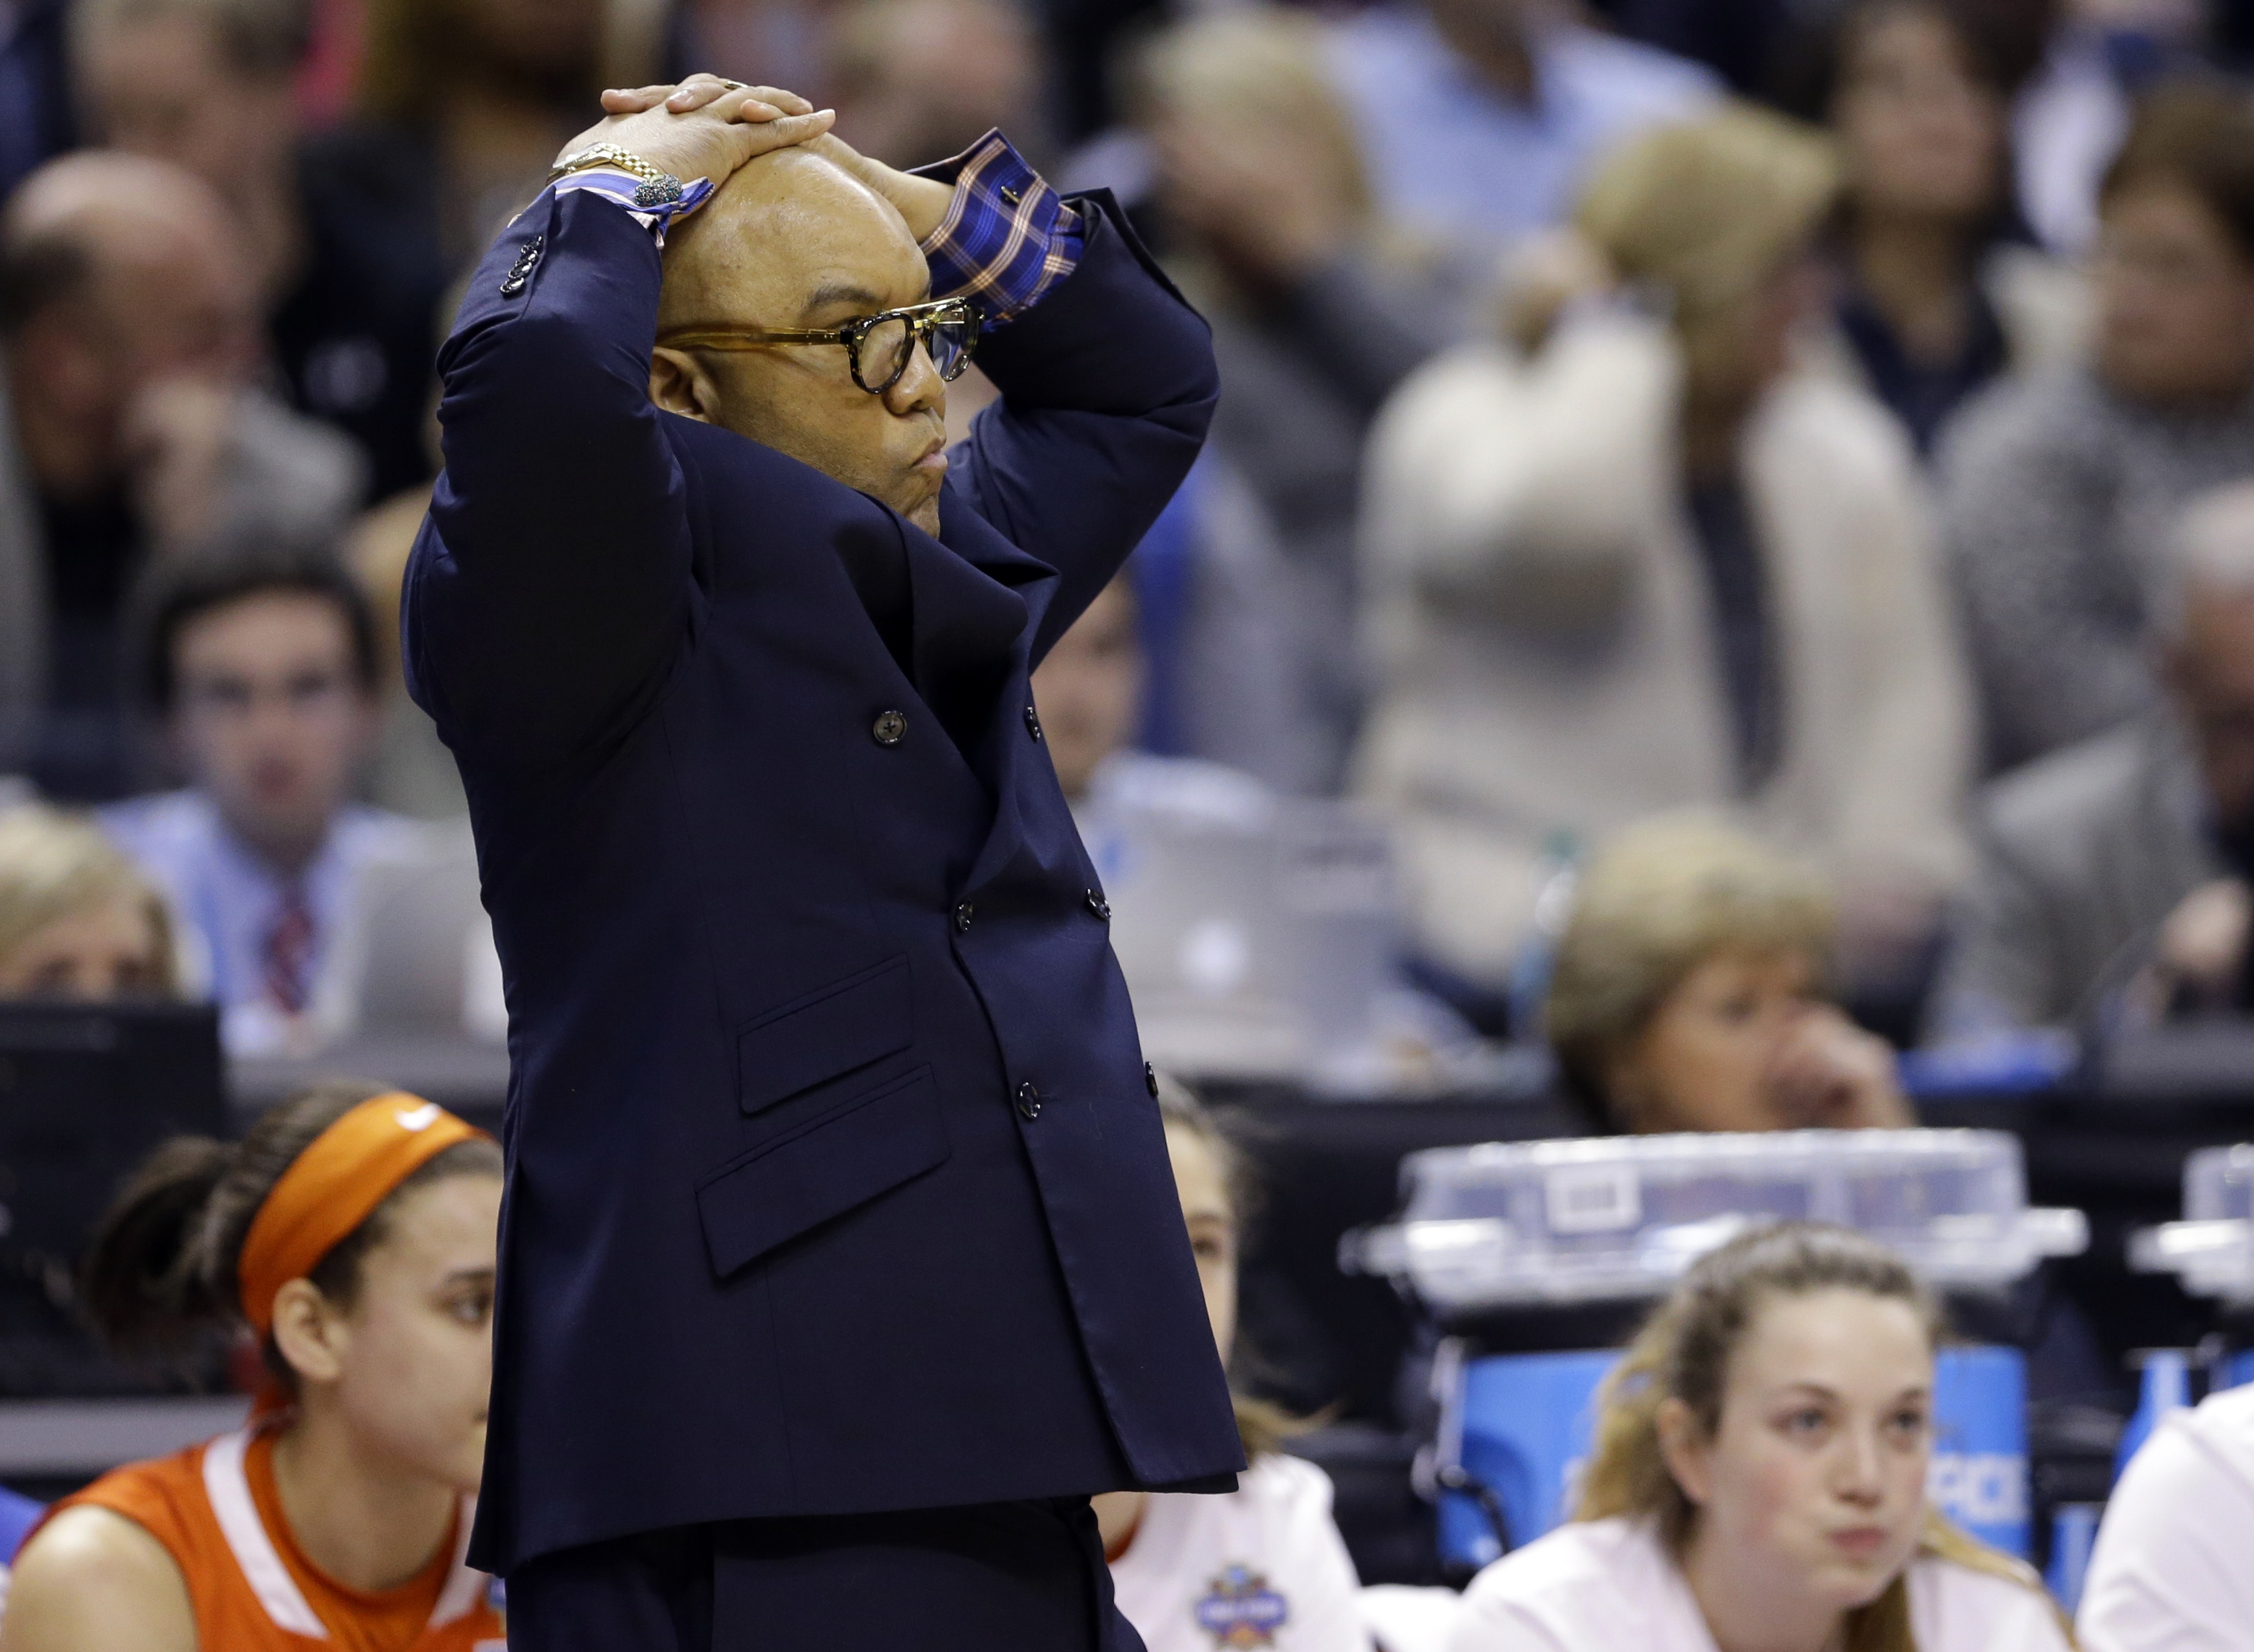 Syracuse head coach Quentin Hillsman watches during the first half of the championship game against Connecticut, at the women's Final Four in the NCAA college basketball tournament Tuesday, April 5, 2016, in Indianapolis. (AP Photo/Michael Conroy)